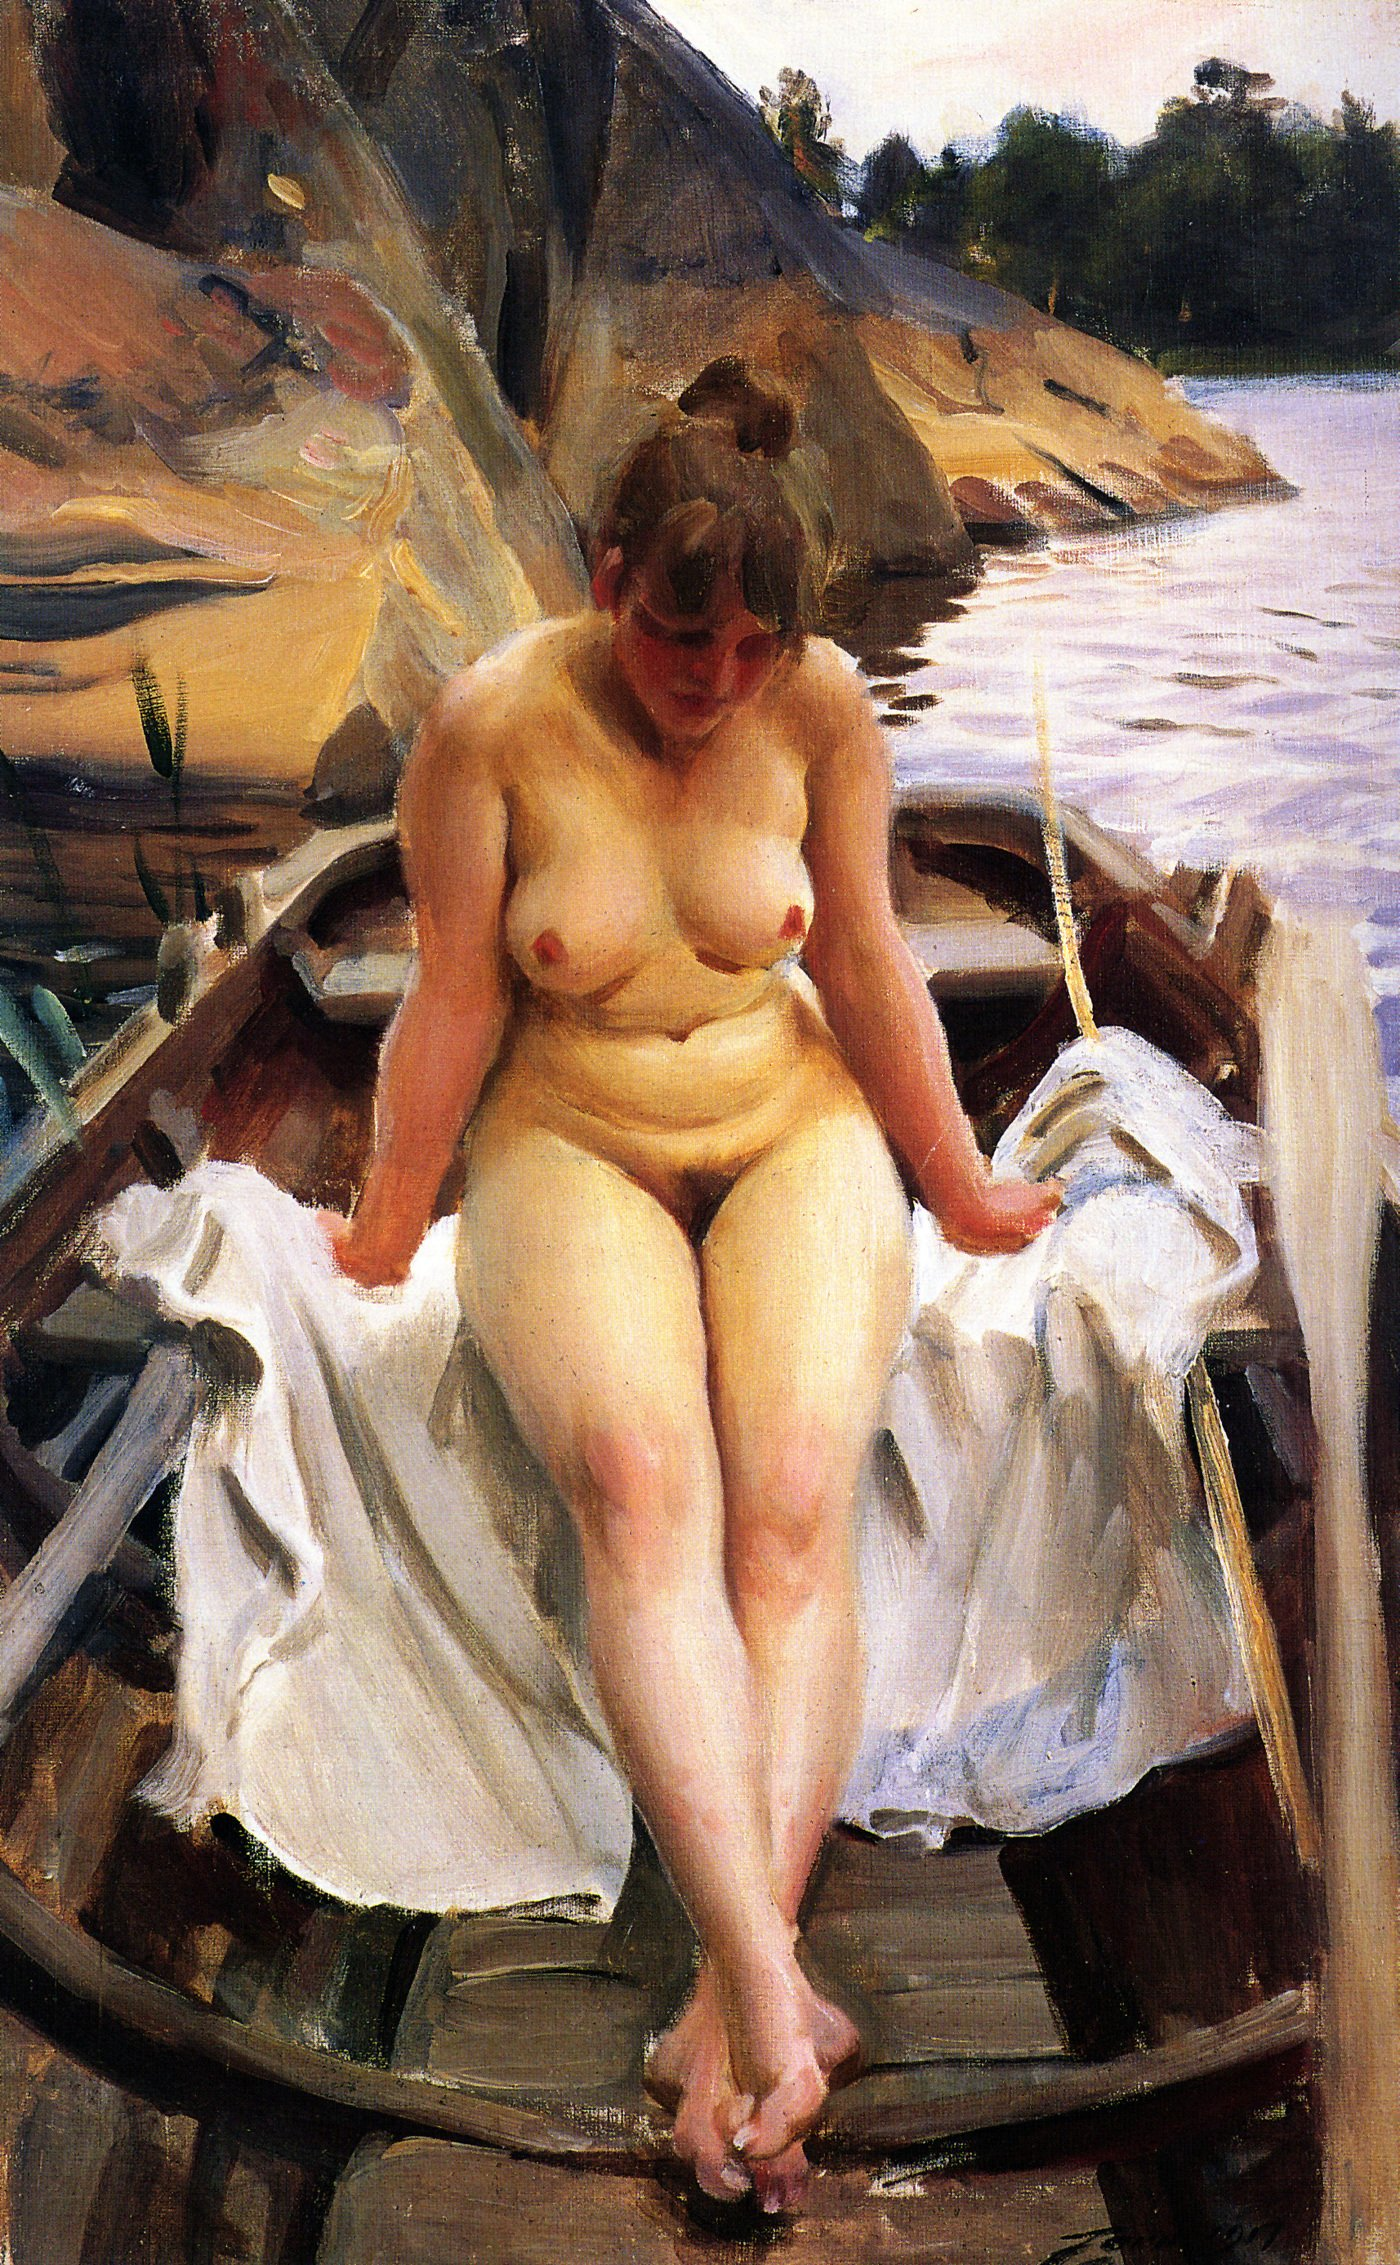 Anders Zorn background